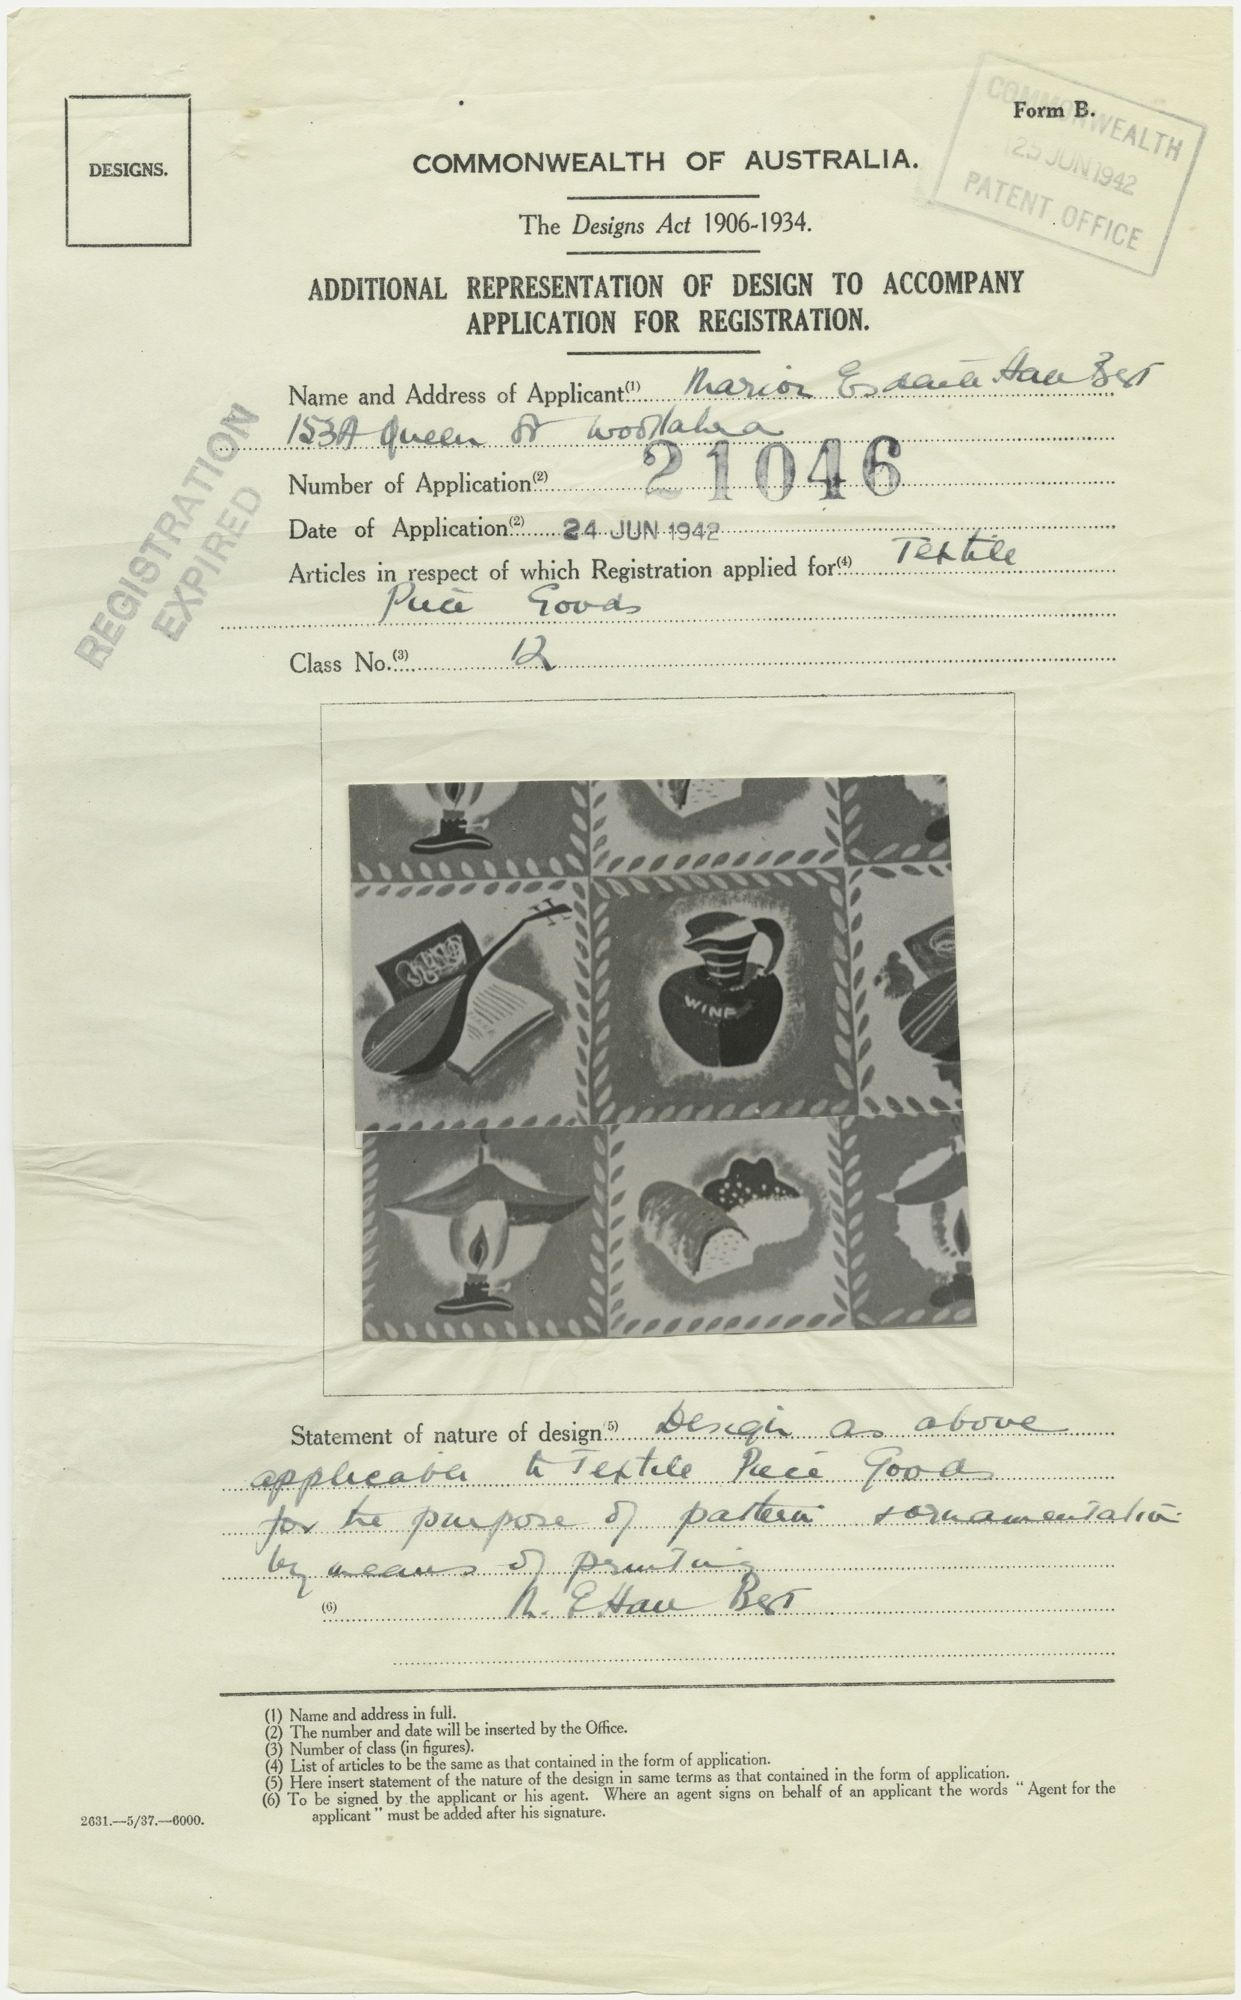 Registration of an Elaine Haxton textile design for Marion Best Fabrics